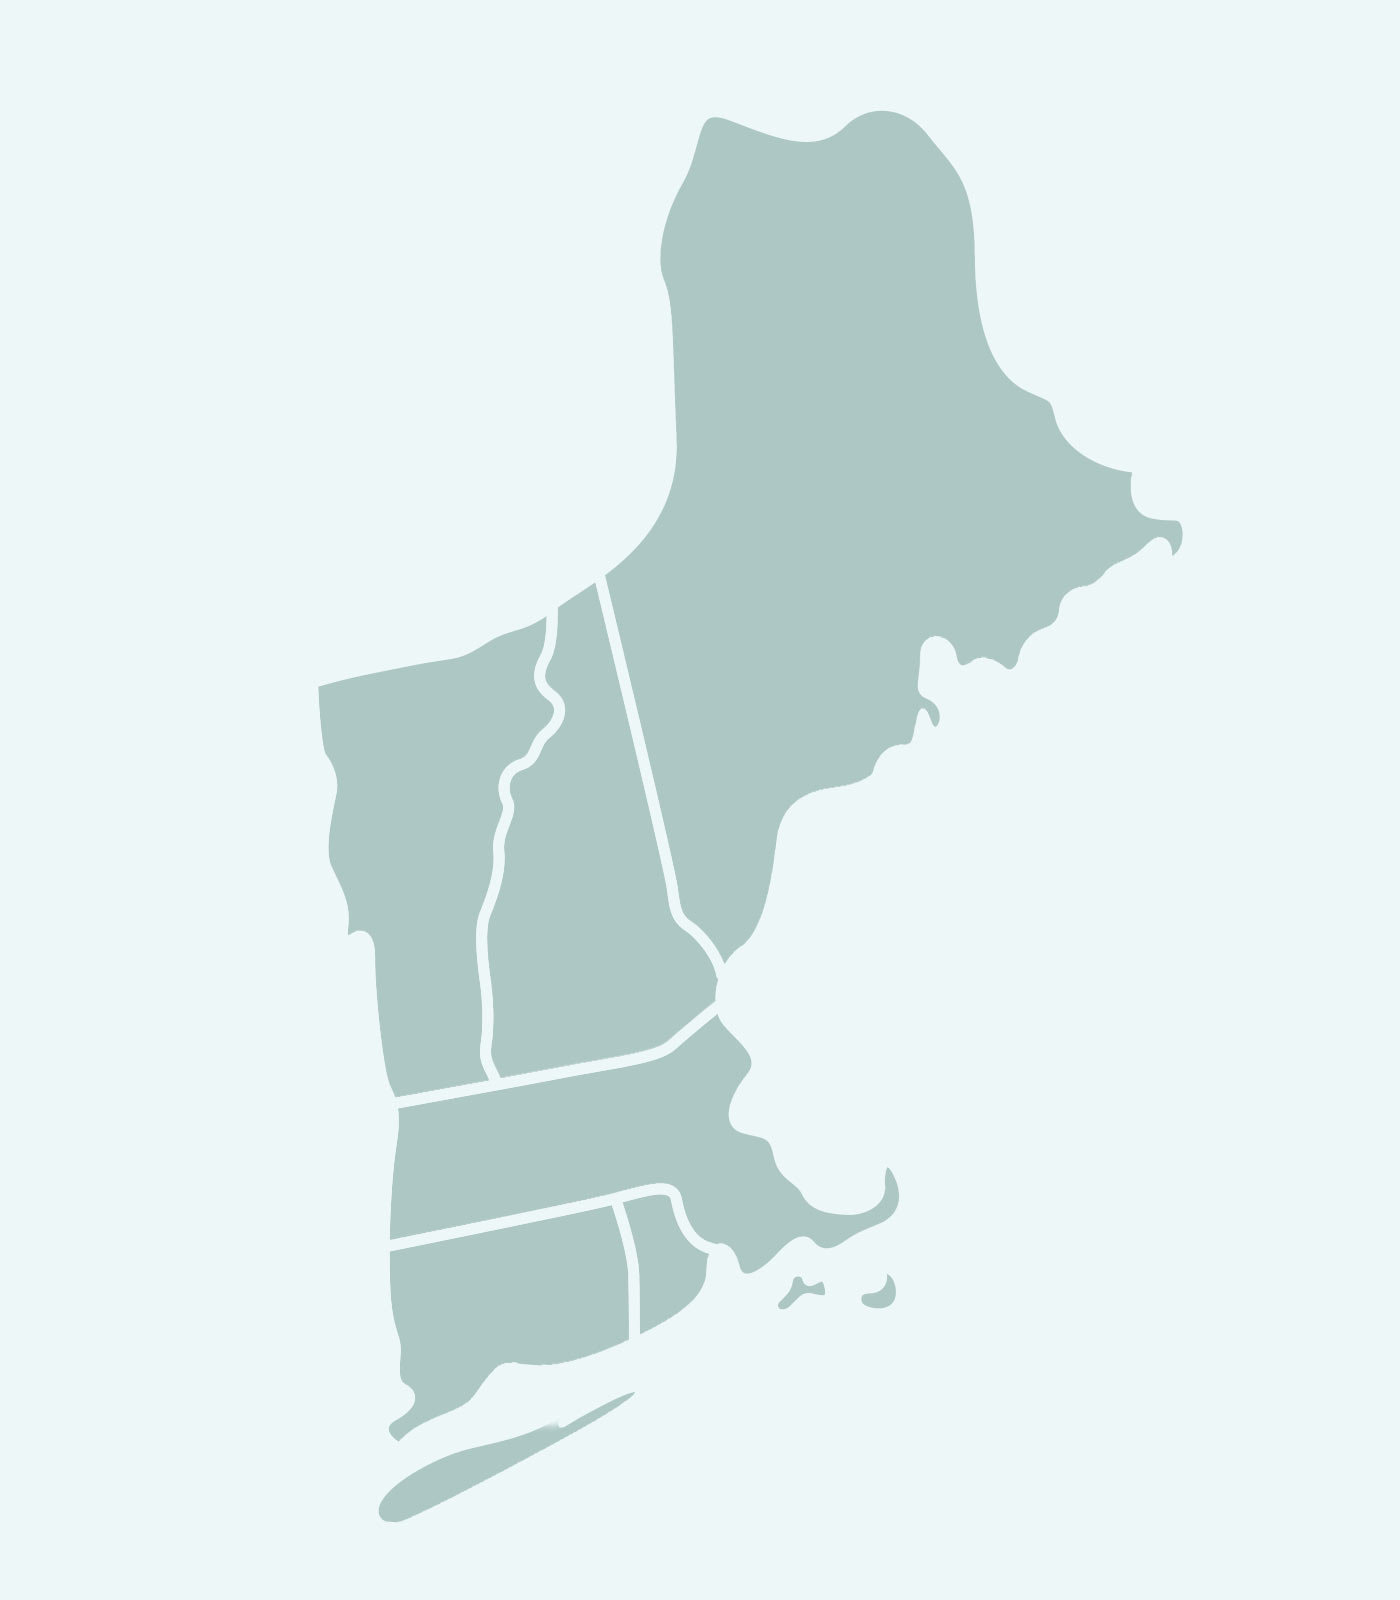 Sales Rep's Map of Massachusetts, Vermont, Maine, Rhode Island, New Hampshire, Connecticut for Women's Clothing Line Keren Hart